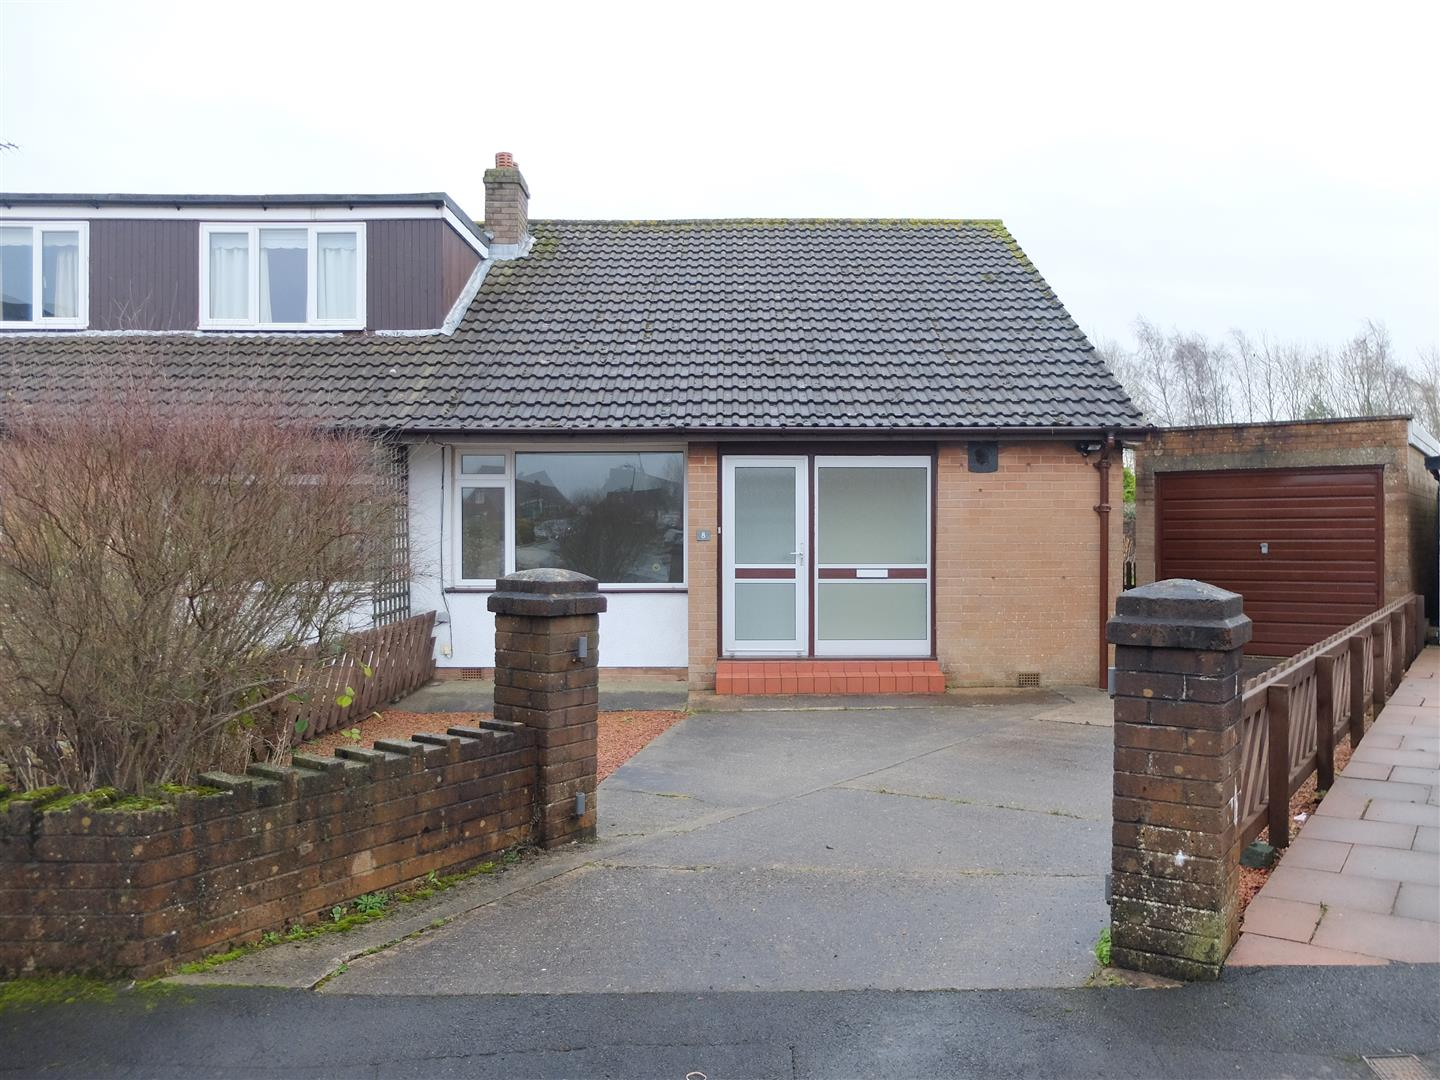 8 South Croft Carlisle 3 Bedrooms Bungalow - Semi Detached For Sale